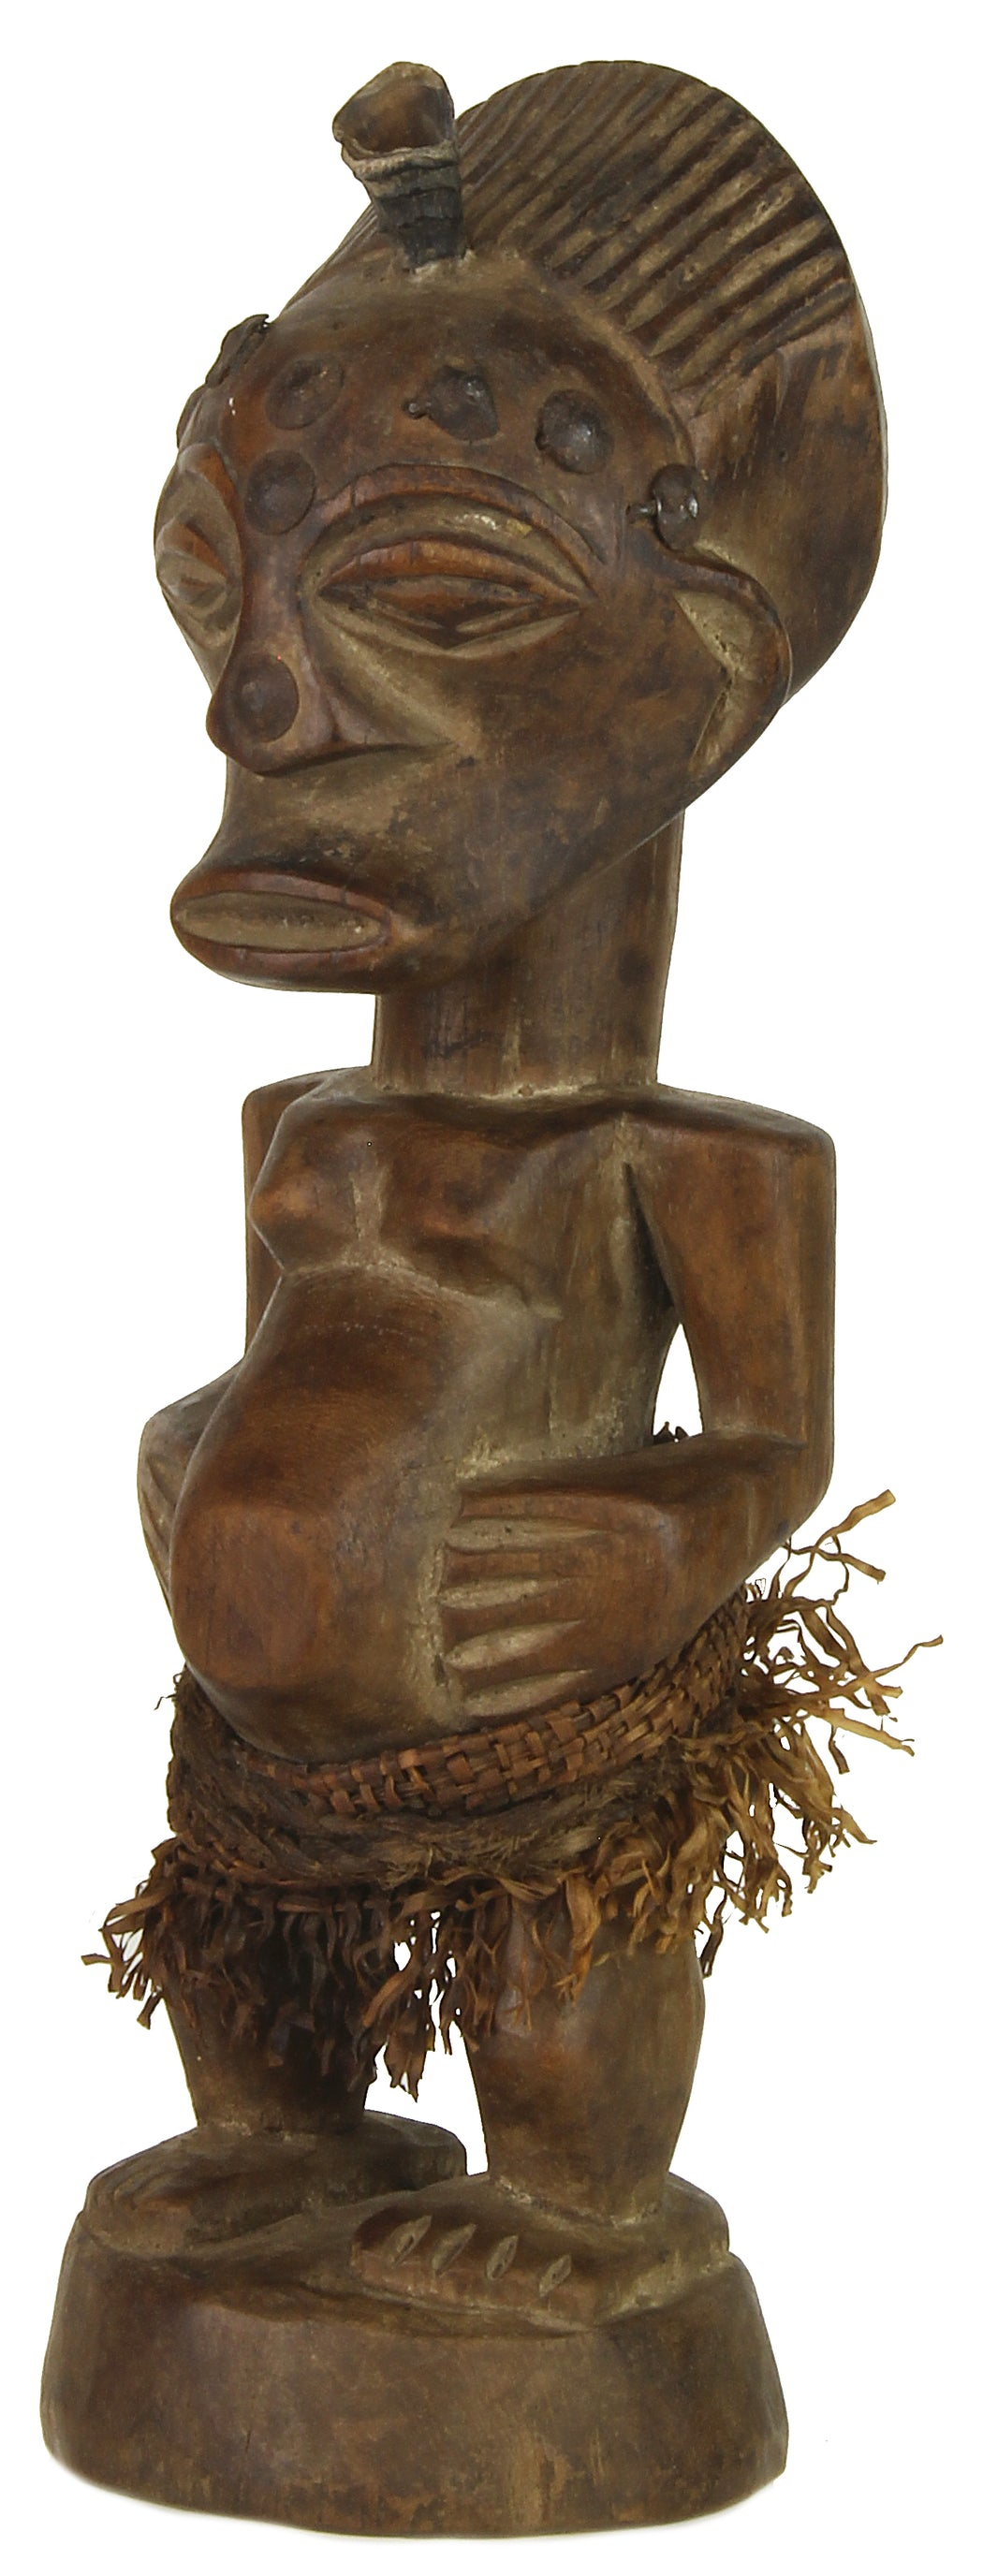 "Songye Tribal Power Figure Statue of Congo | 8.5"" - Niger Bend"